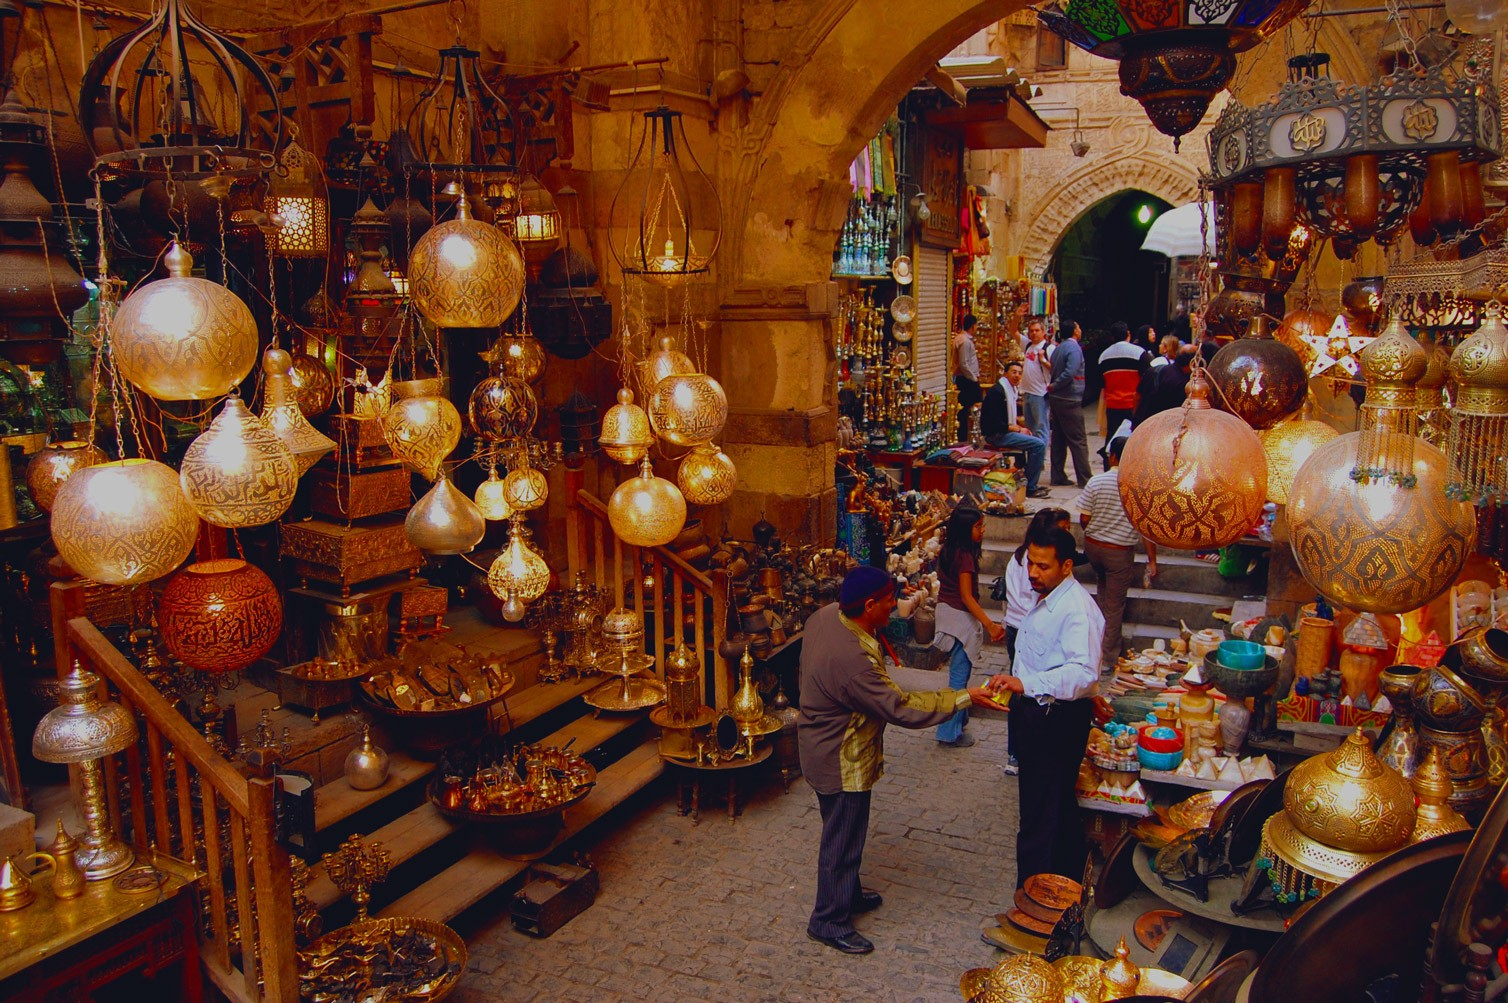 Egypt Sightseeing Tour for 1 Week